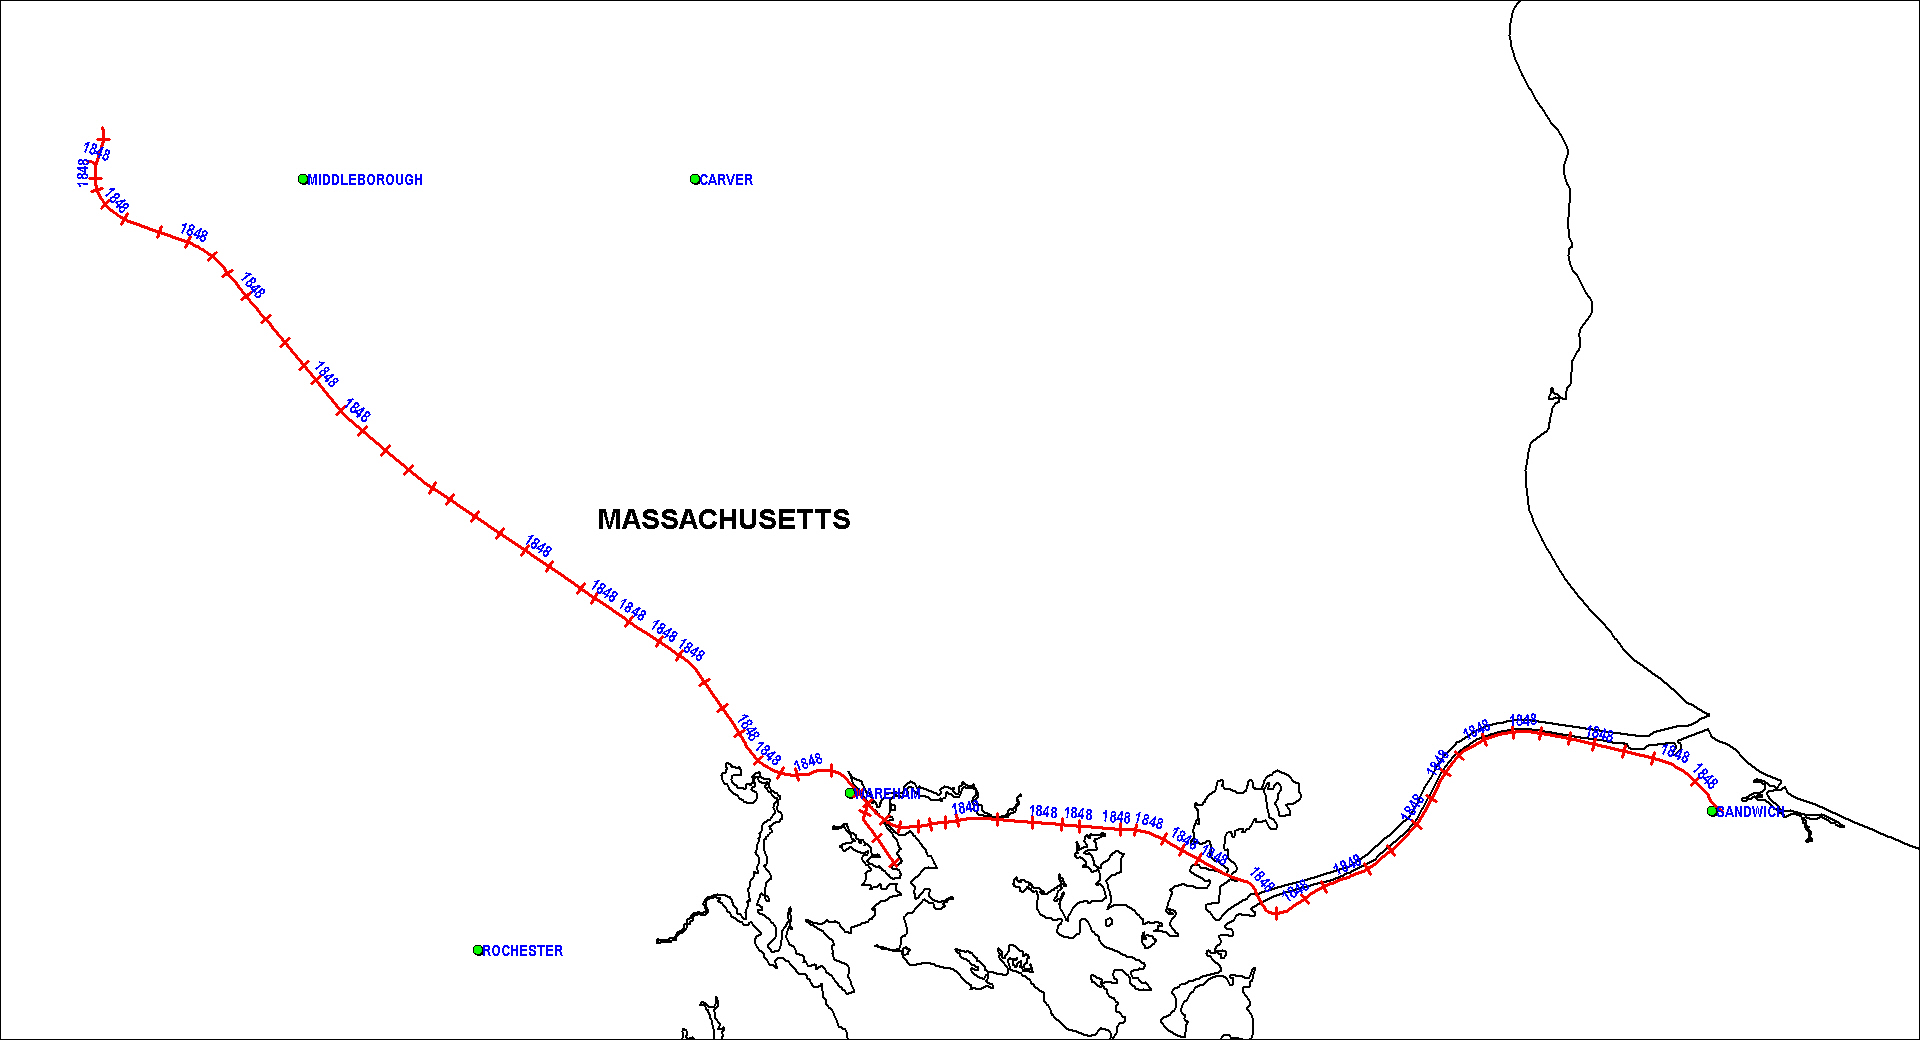 Cape Cod Branch Railroad Map as of 1850